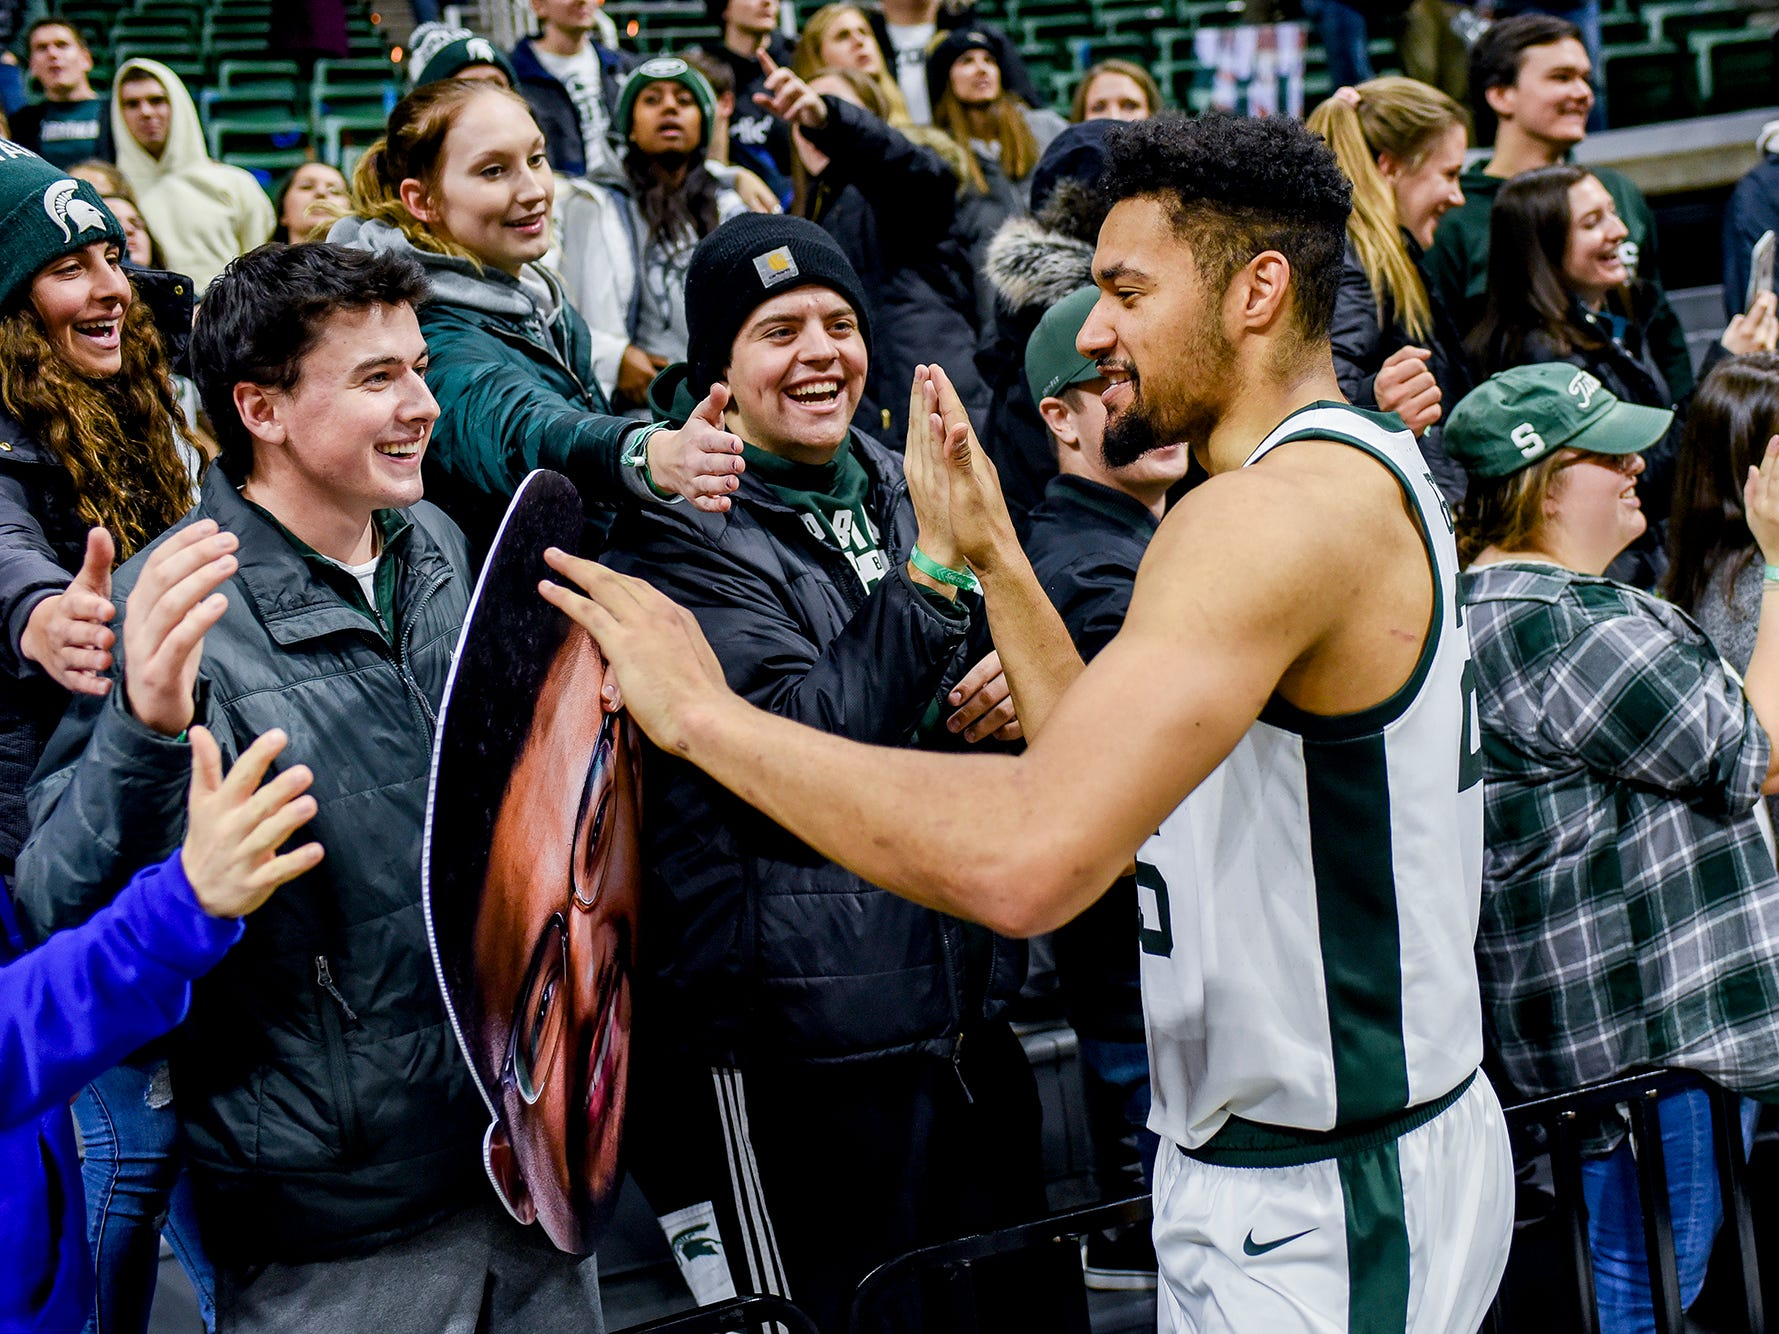 Michigan State's Kenny Goins celebrates with fans after the game on Monday, Dec. 3, 2018, at the Breslin Center in East Lansing. Michigan State beat Iowa 90-68.